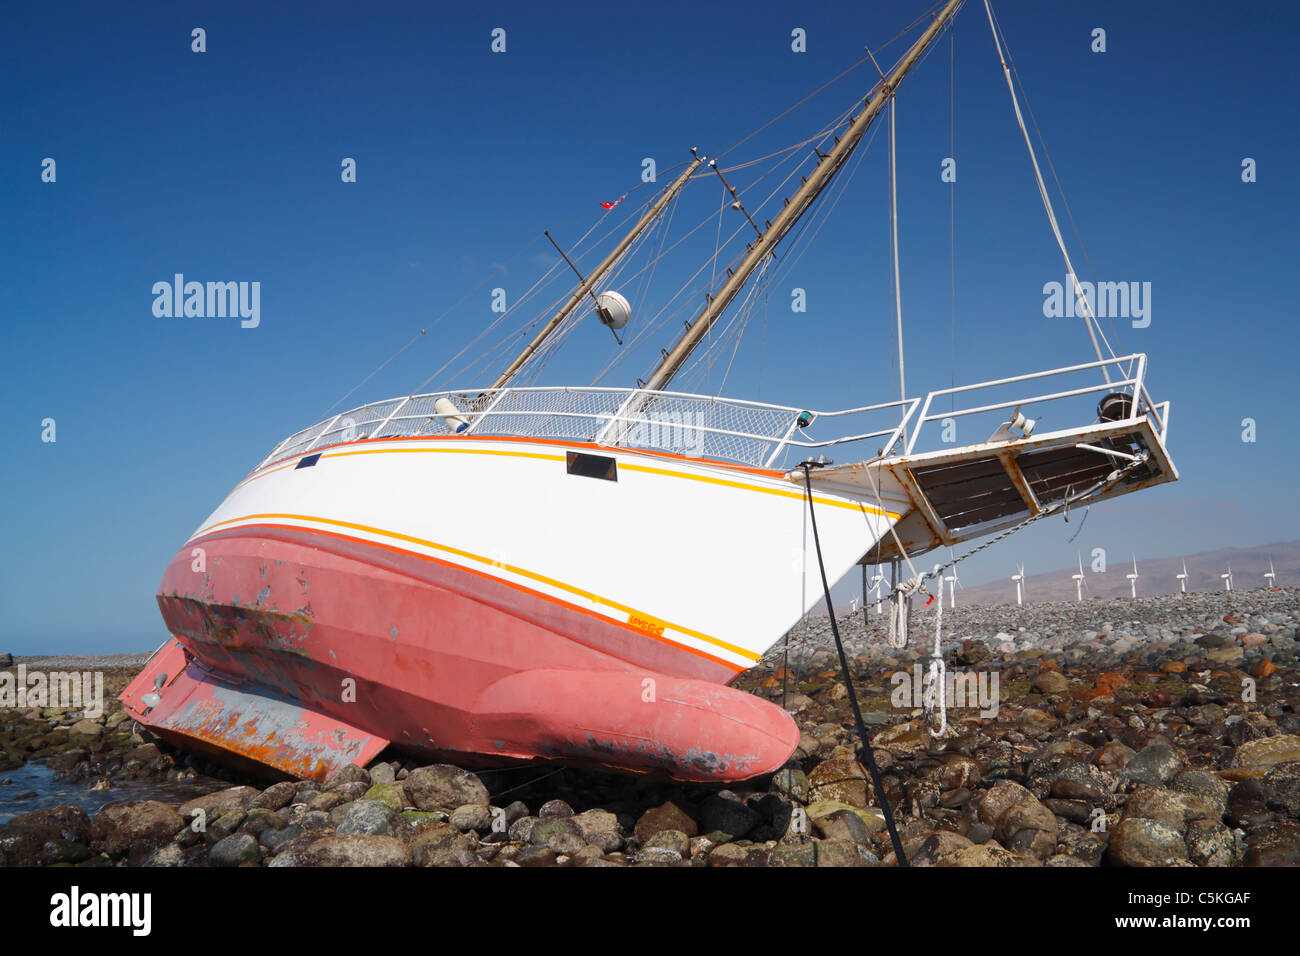 Steel hulled yacht aground on rocks on east coast of Gran Canaria - Stock Image